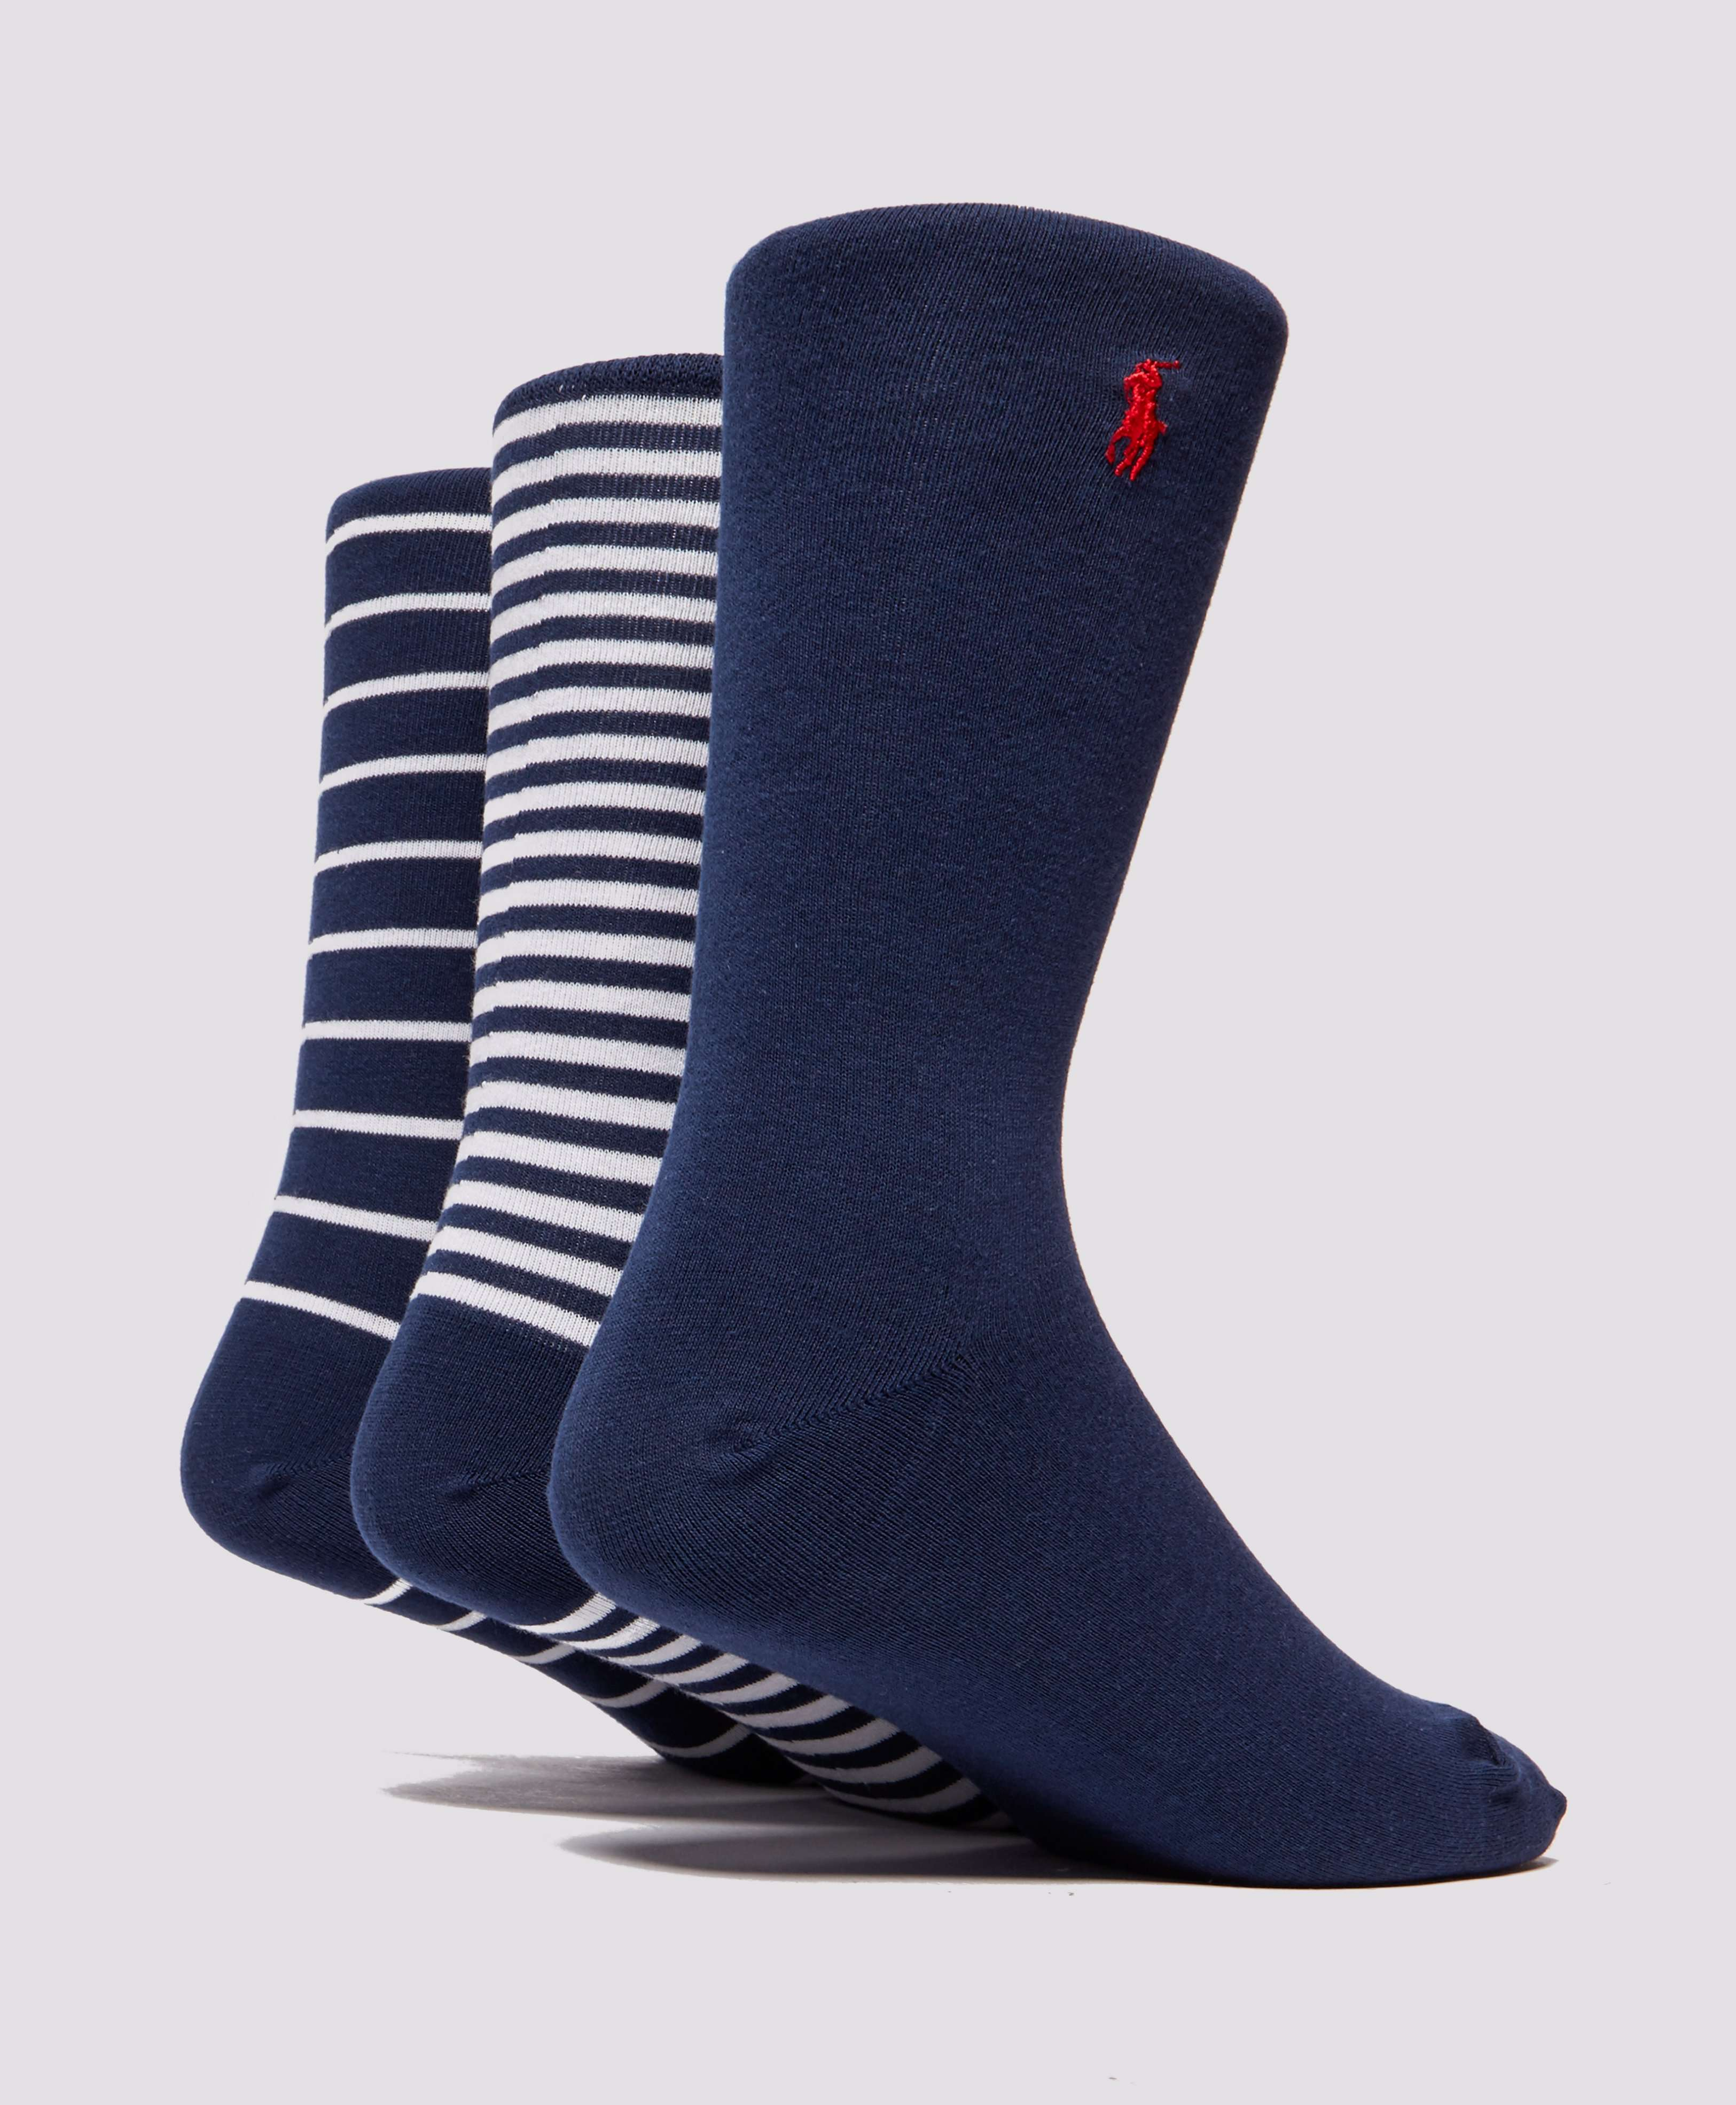 Polo Ralph Lauren 3-Pack Socks